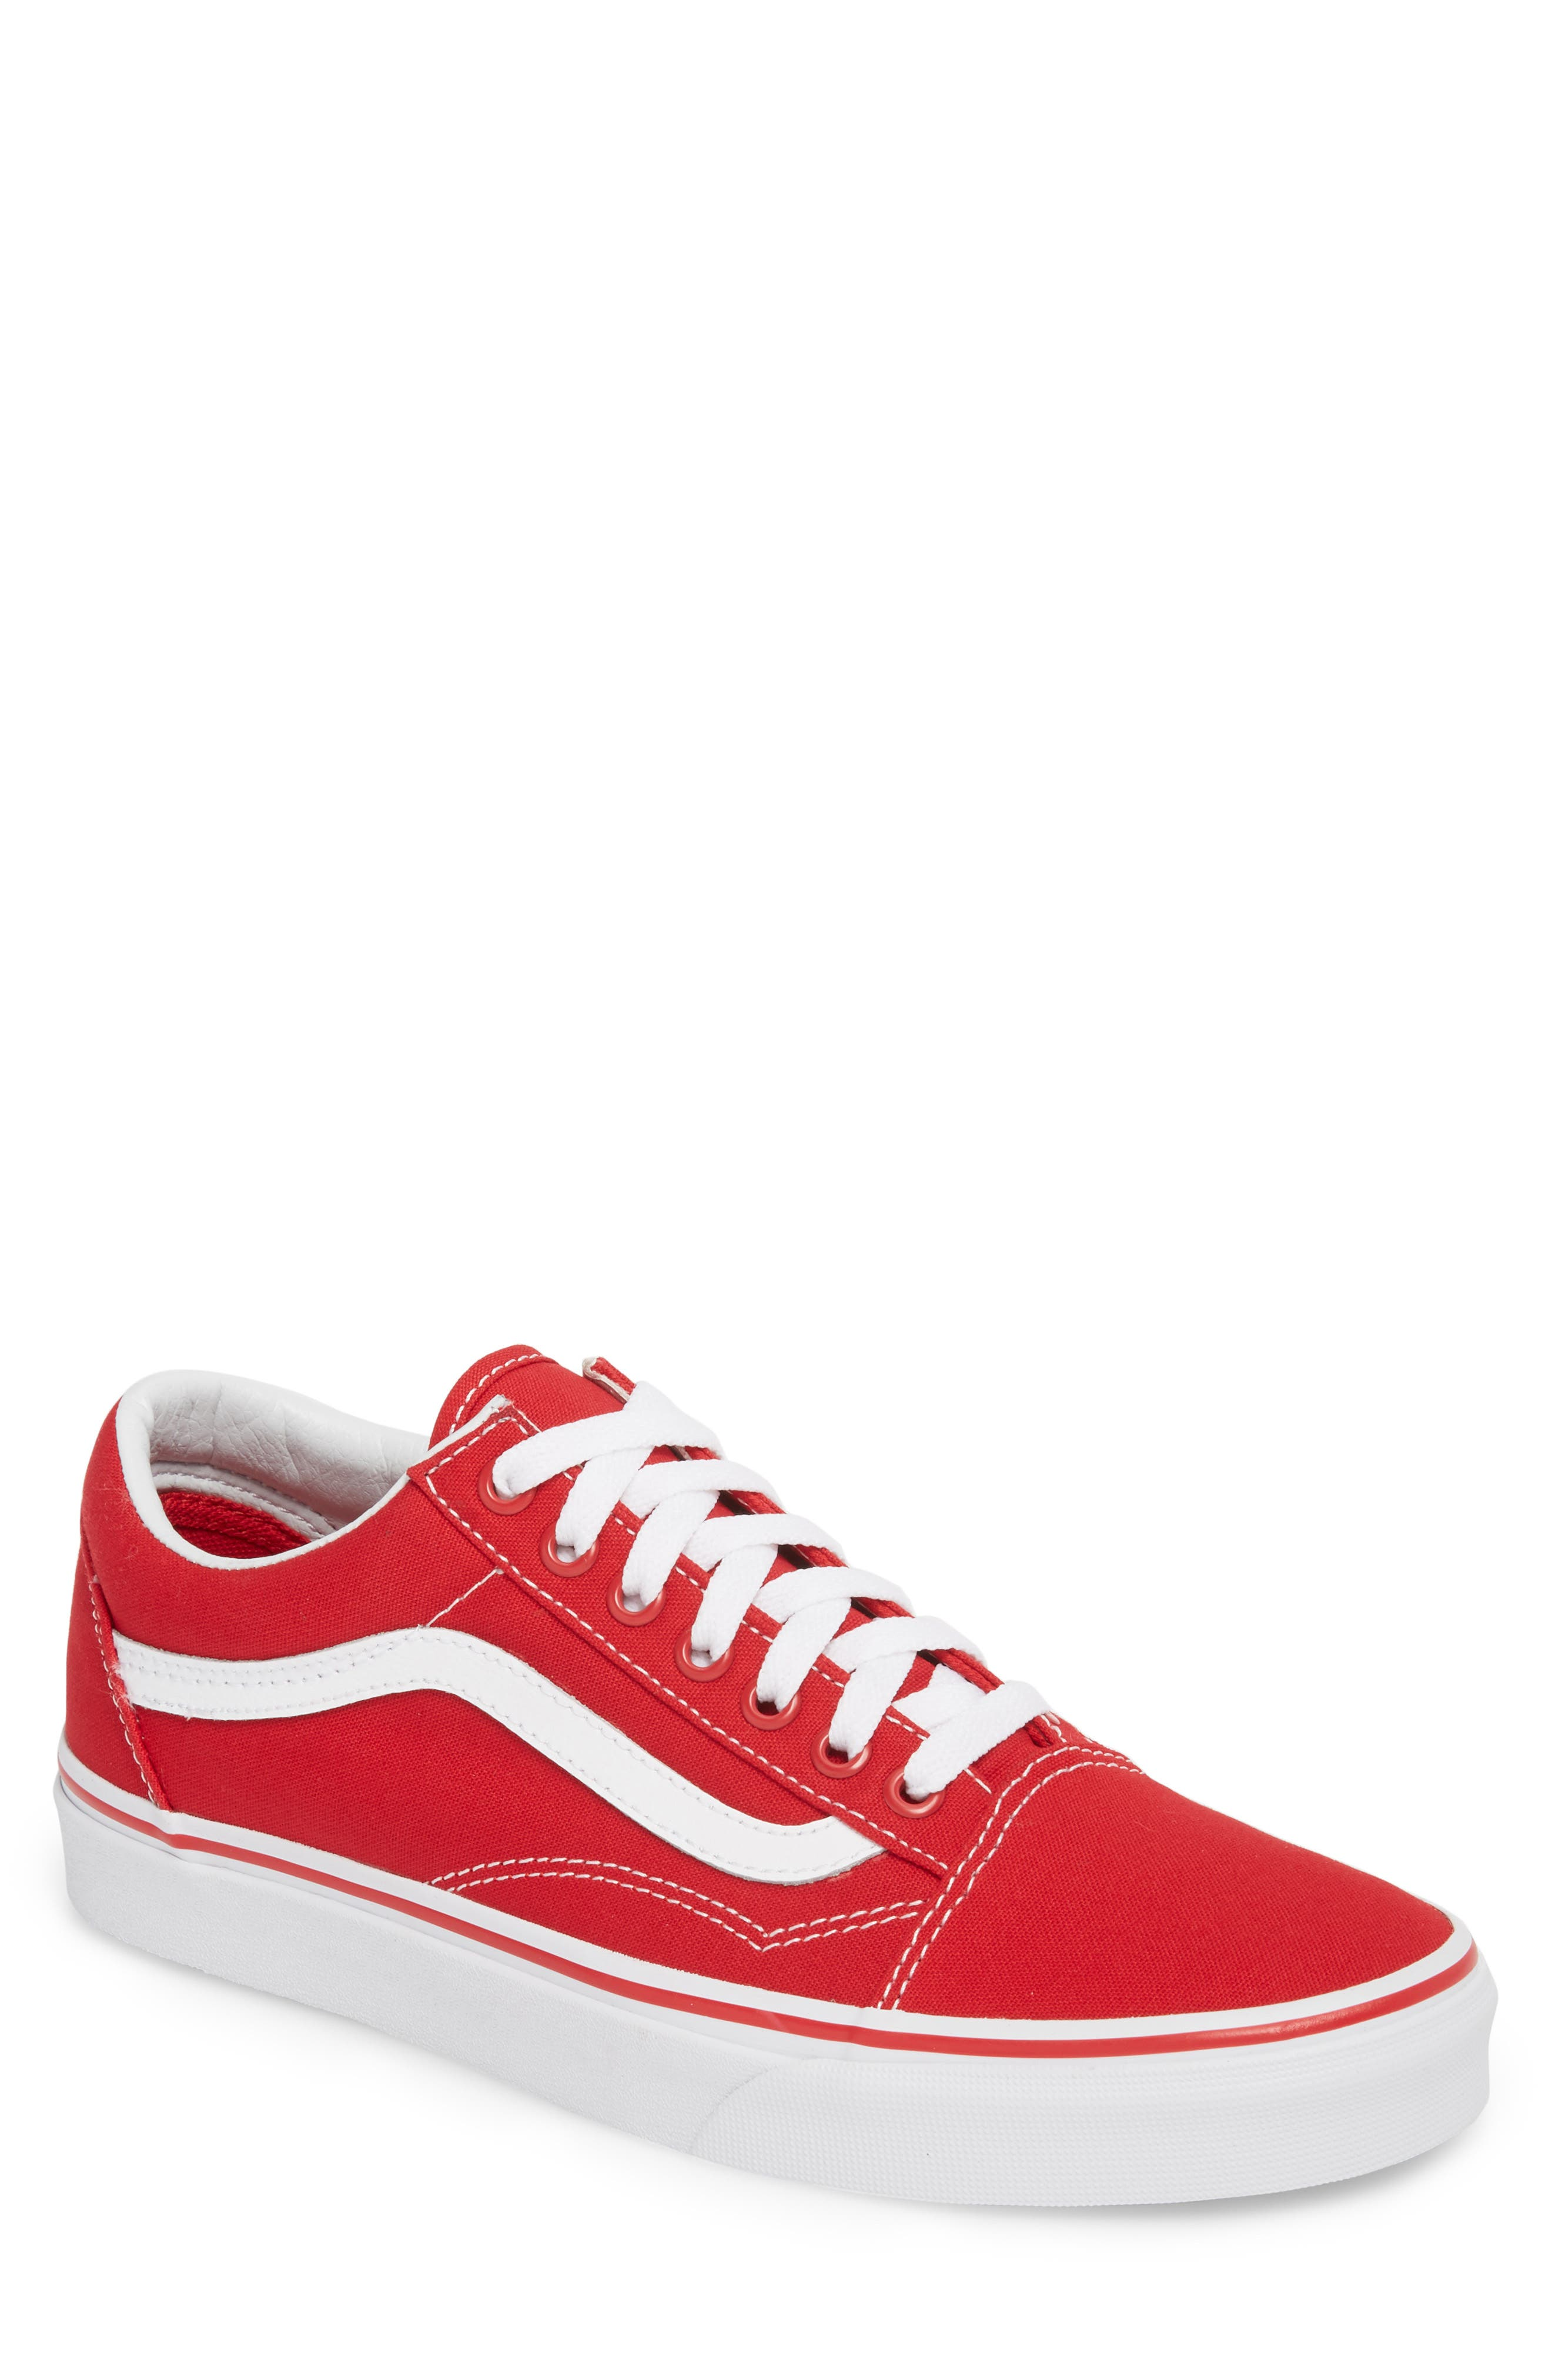 Old Skool Low Top Sneaker,                             Main thumbnail 1, color,                             Formula One Canvas